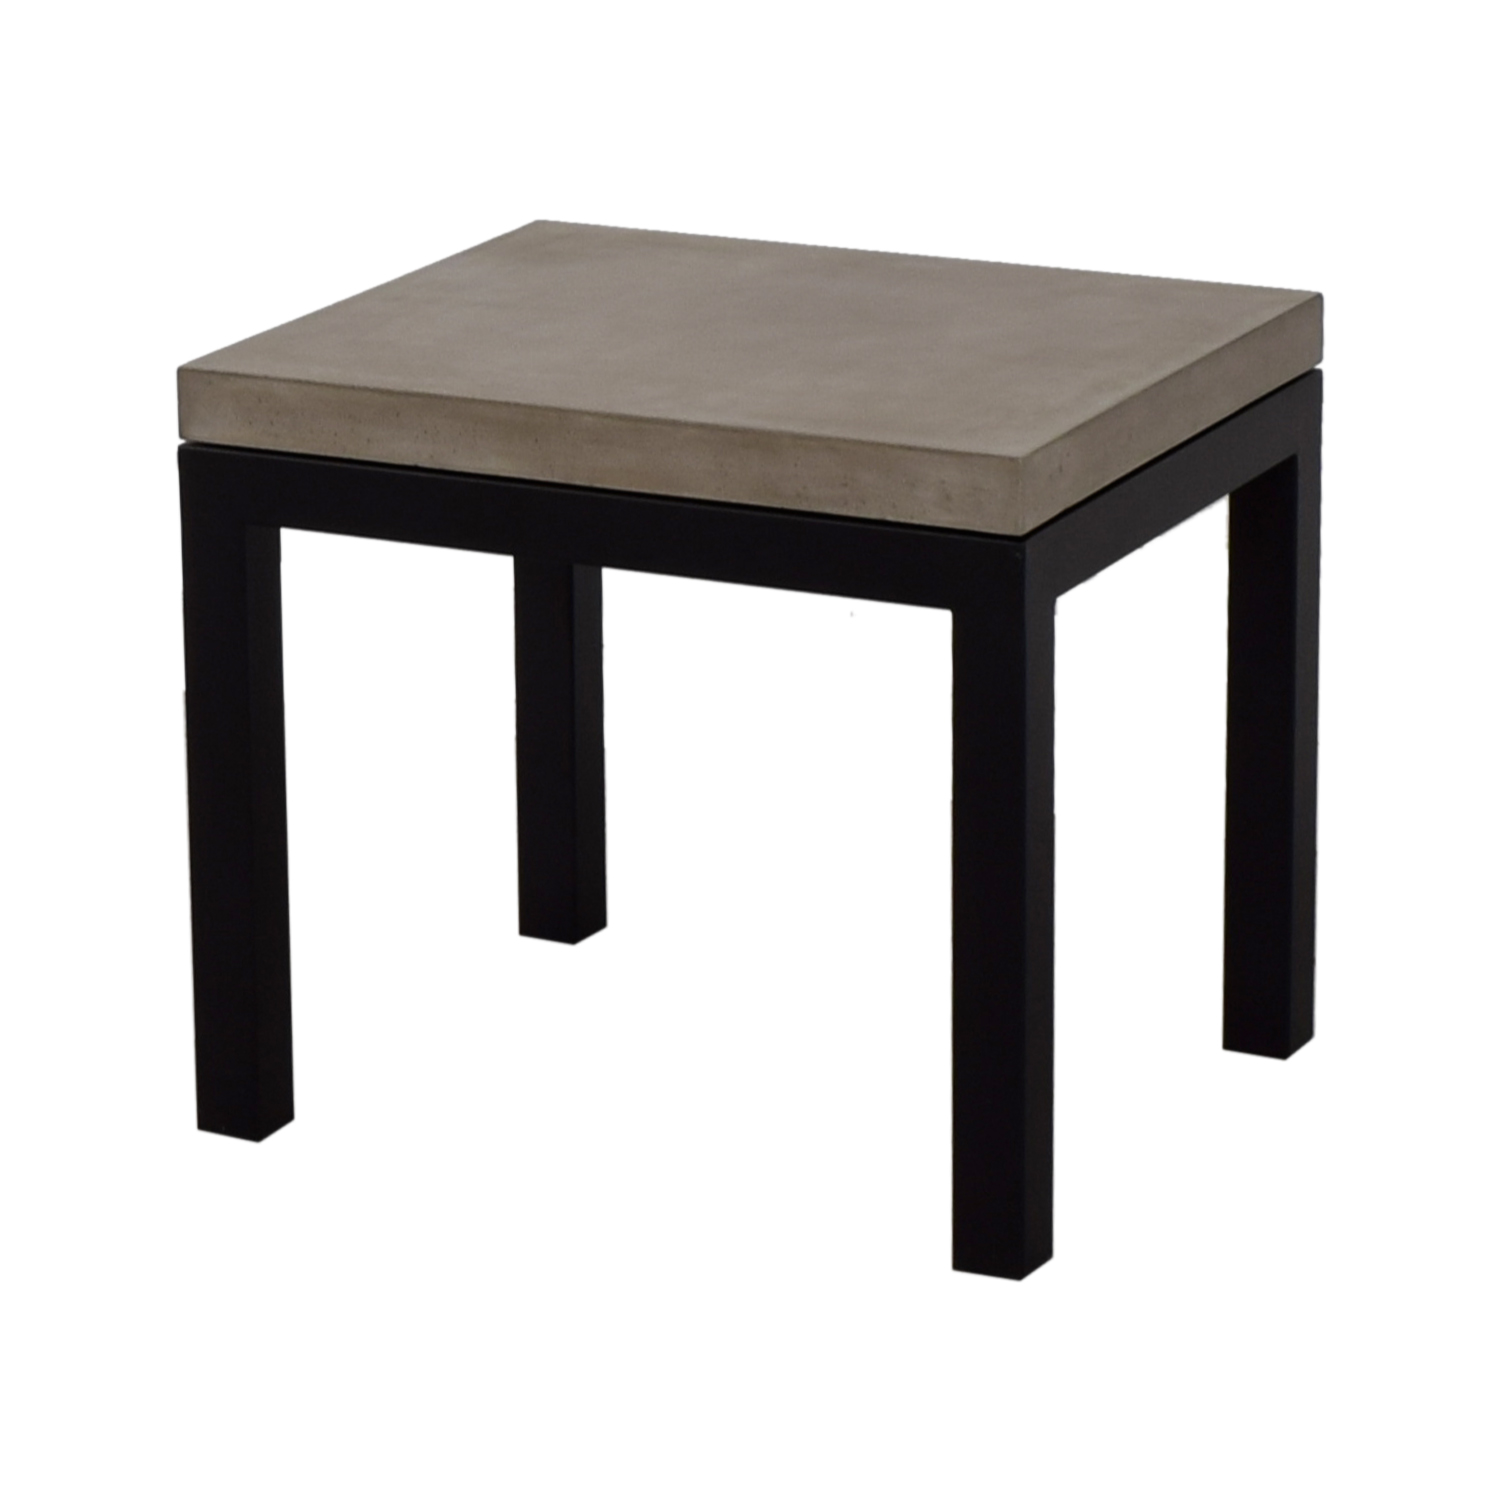 shop Crate & Barrel Parsons Concrete Top Dark Steel Base End Table Crate & Barrel